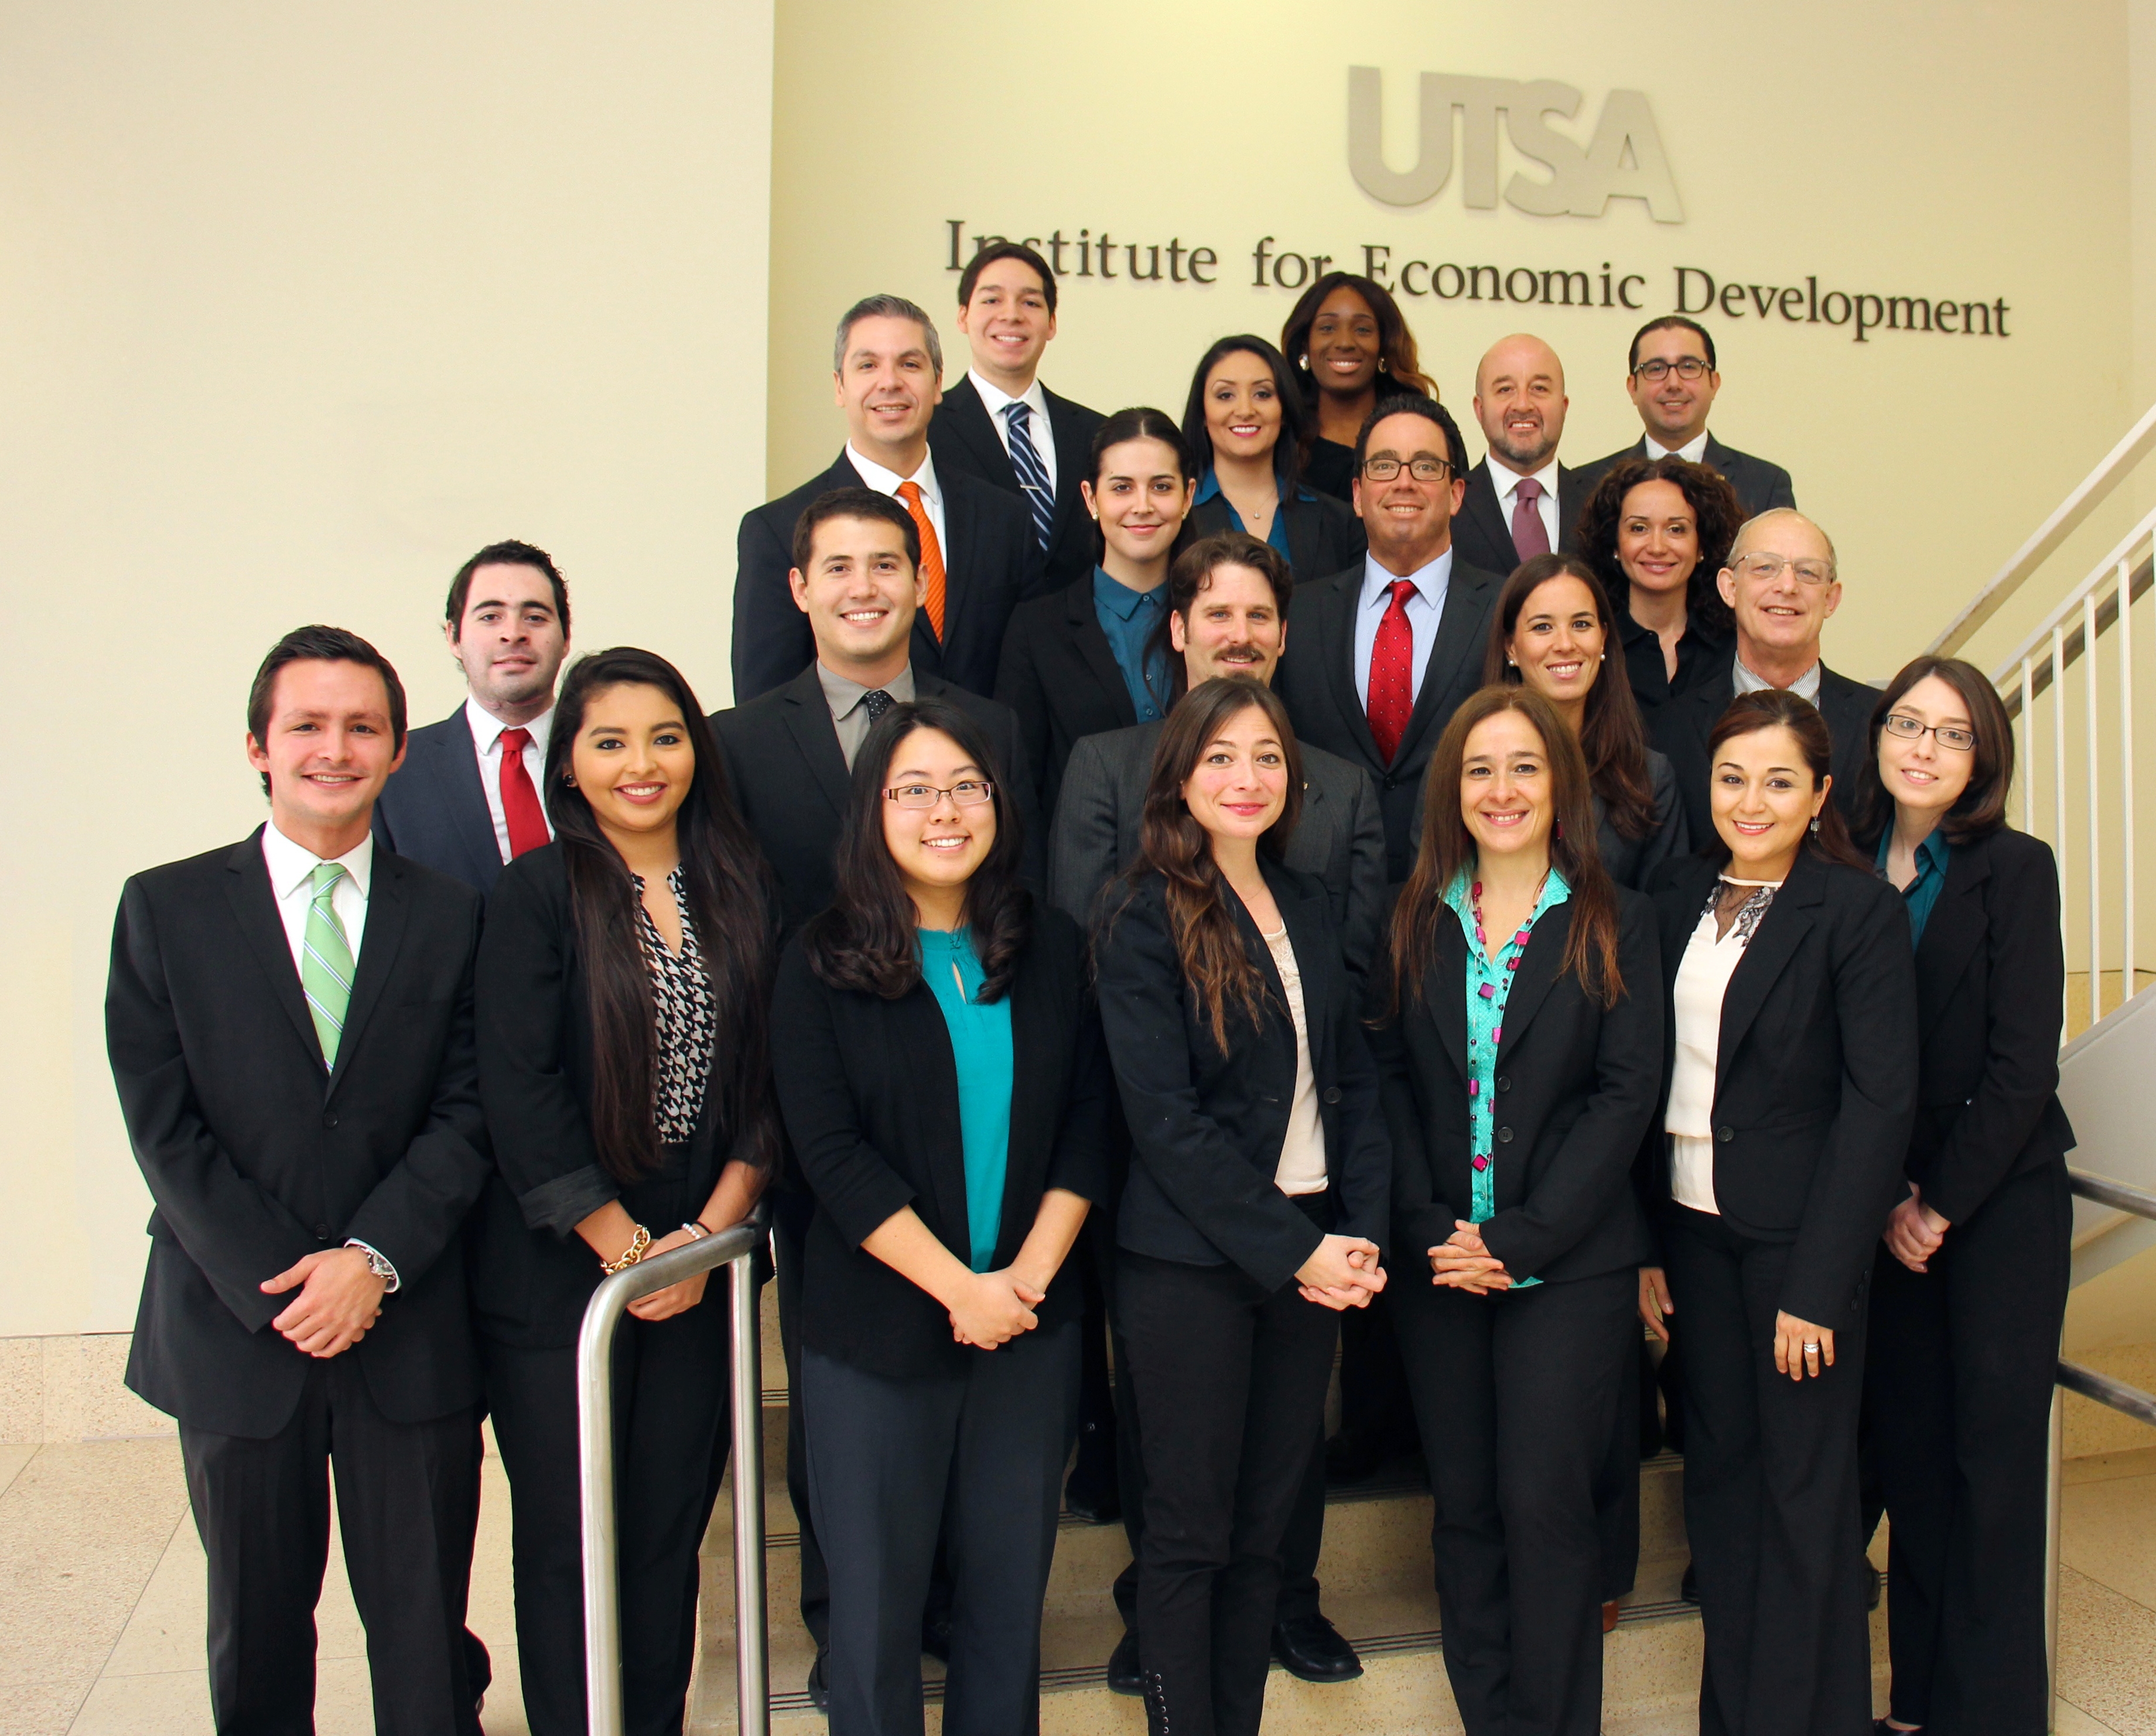 UTSA Receives $1.8M in Grants from U.S. Department of State's Bureau of Western Hemisphere Affairs for Continued Economic Development Efforts in Central America